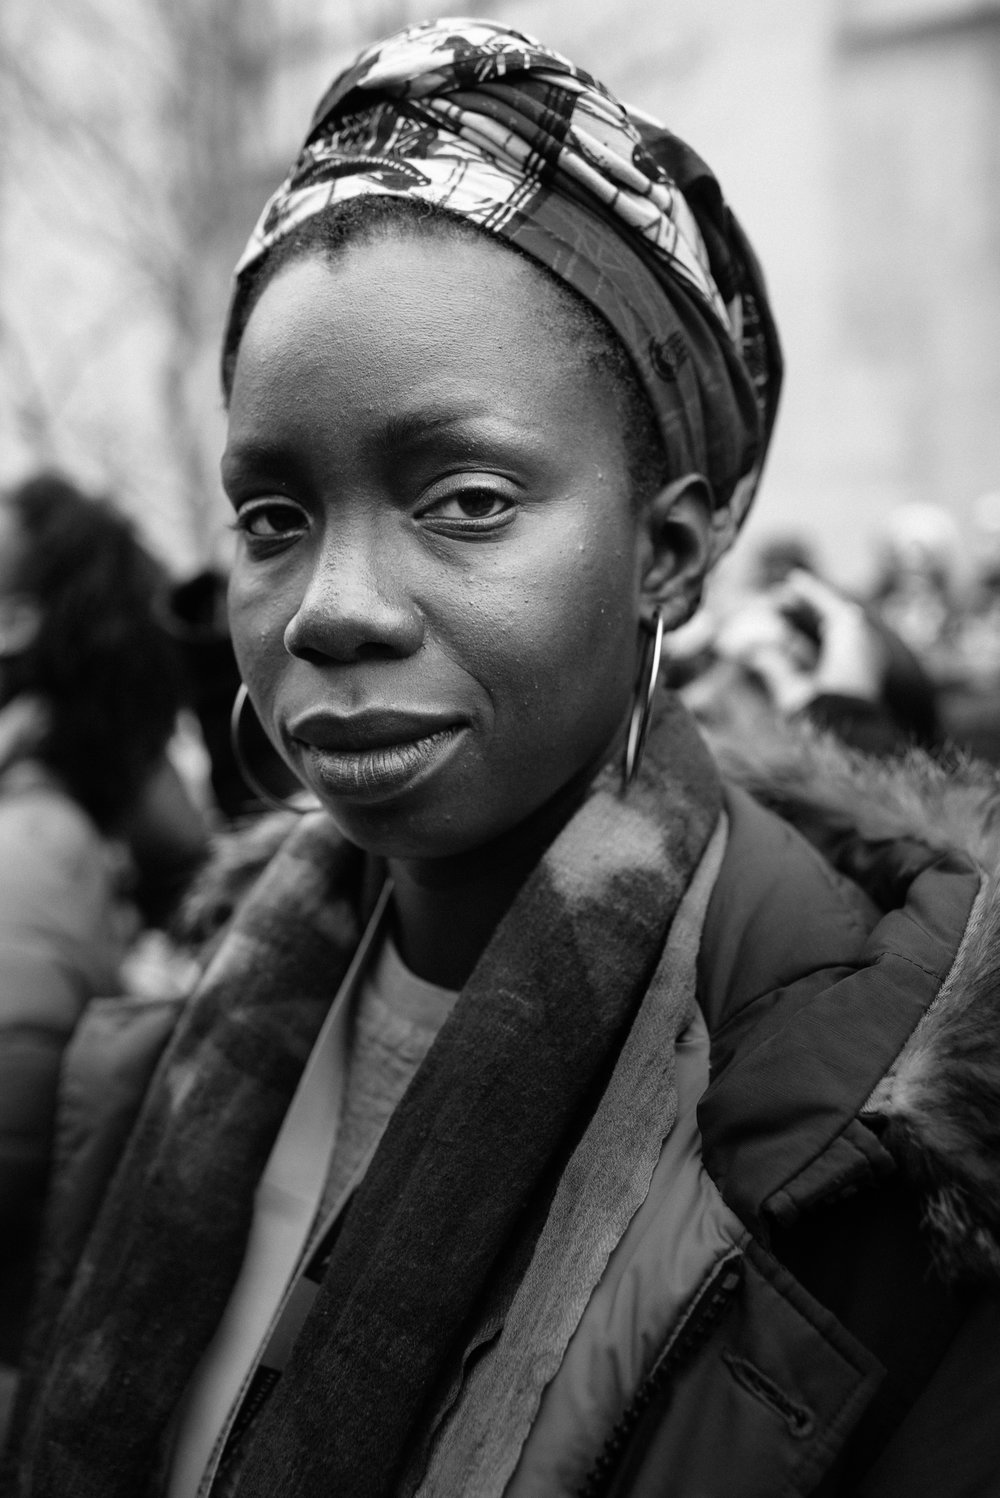 American actress, director, and writer Adepero Oduye, who starred in Pariah, 12 Years a Slave, and many other films.